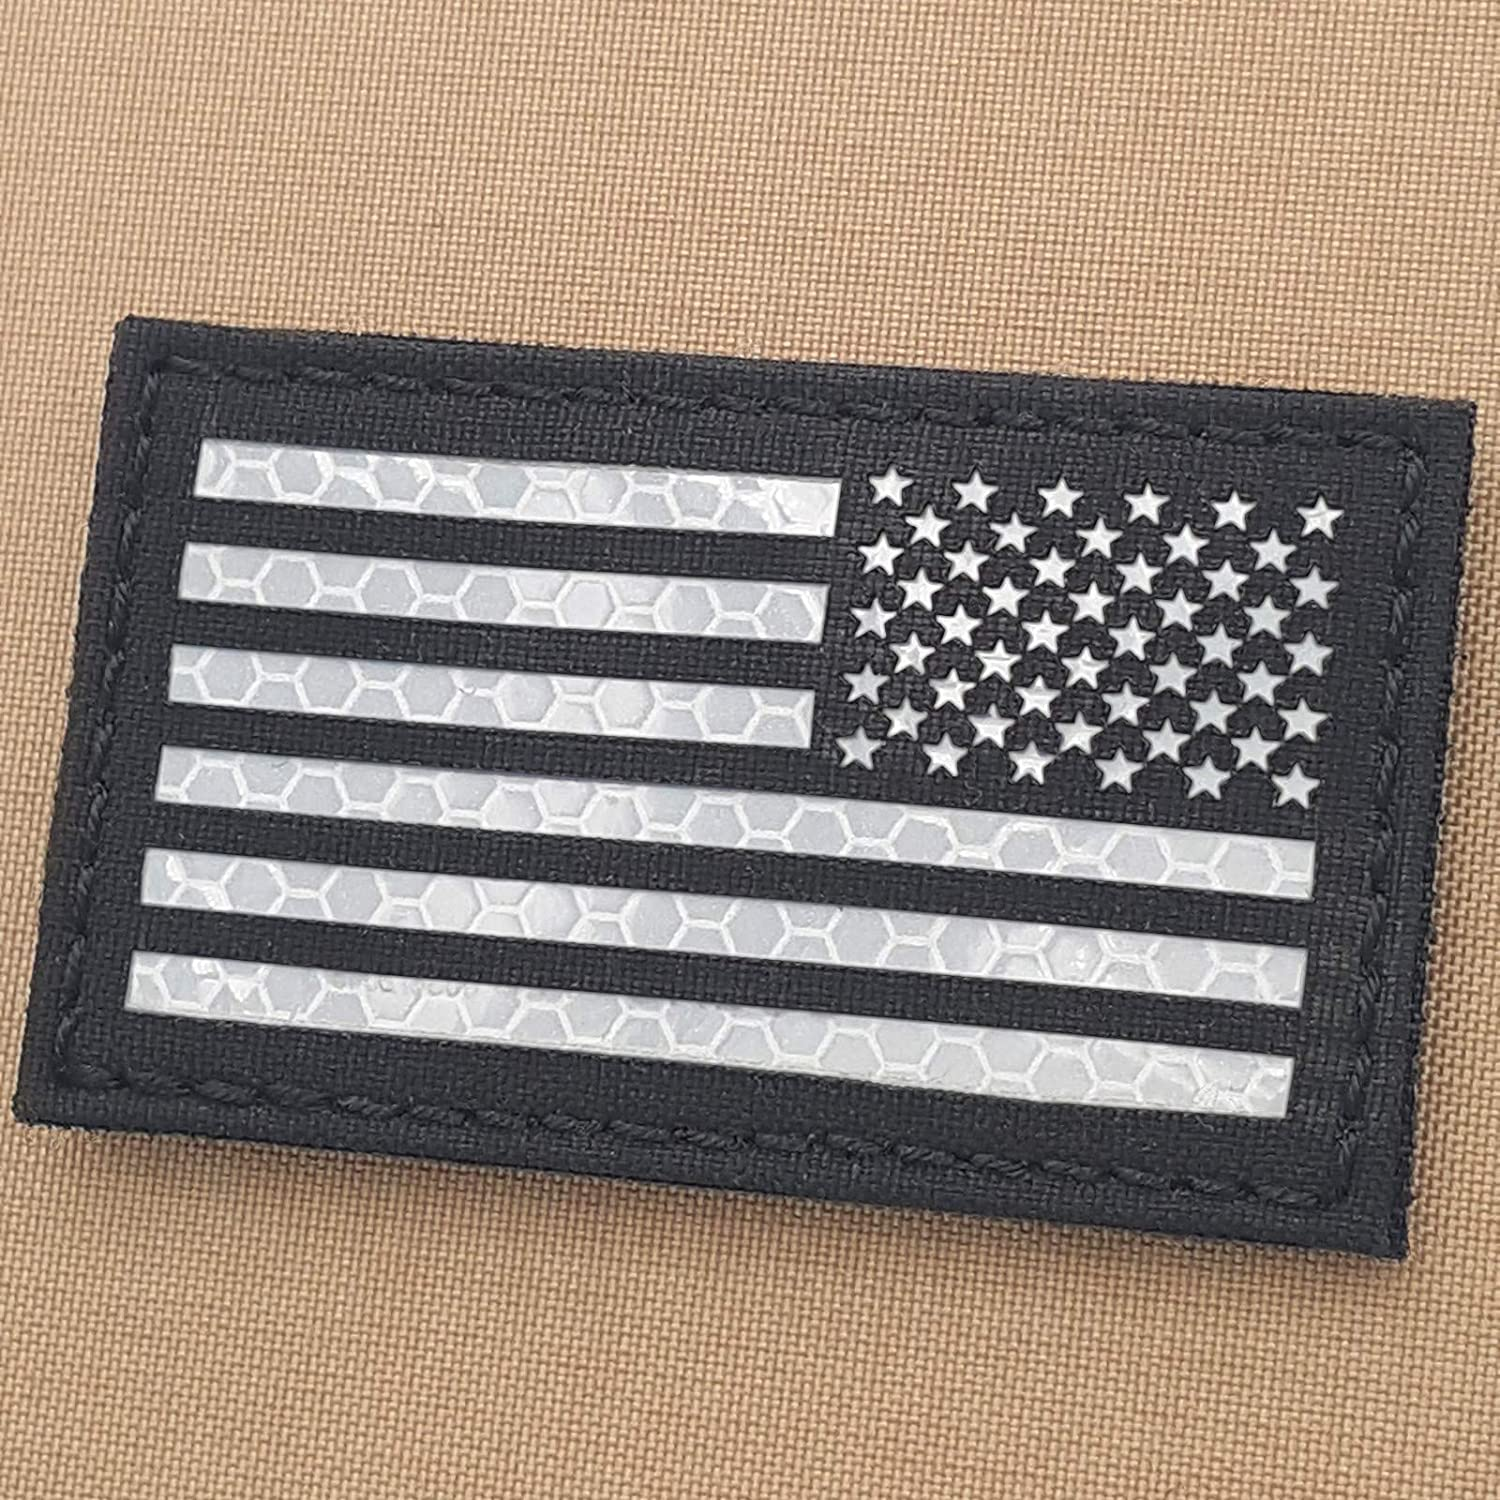 Black and White USA America Reversed Flag 2x3.5 Solas Reflective SAR Right Shoulder Tactical Patch